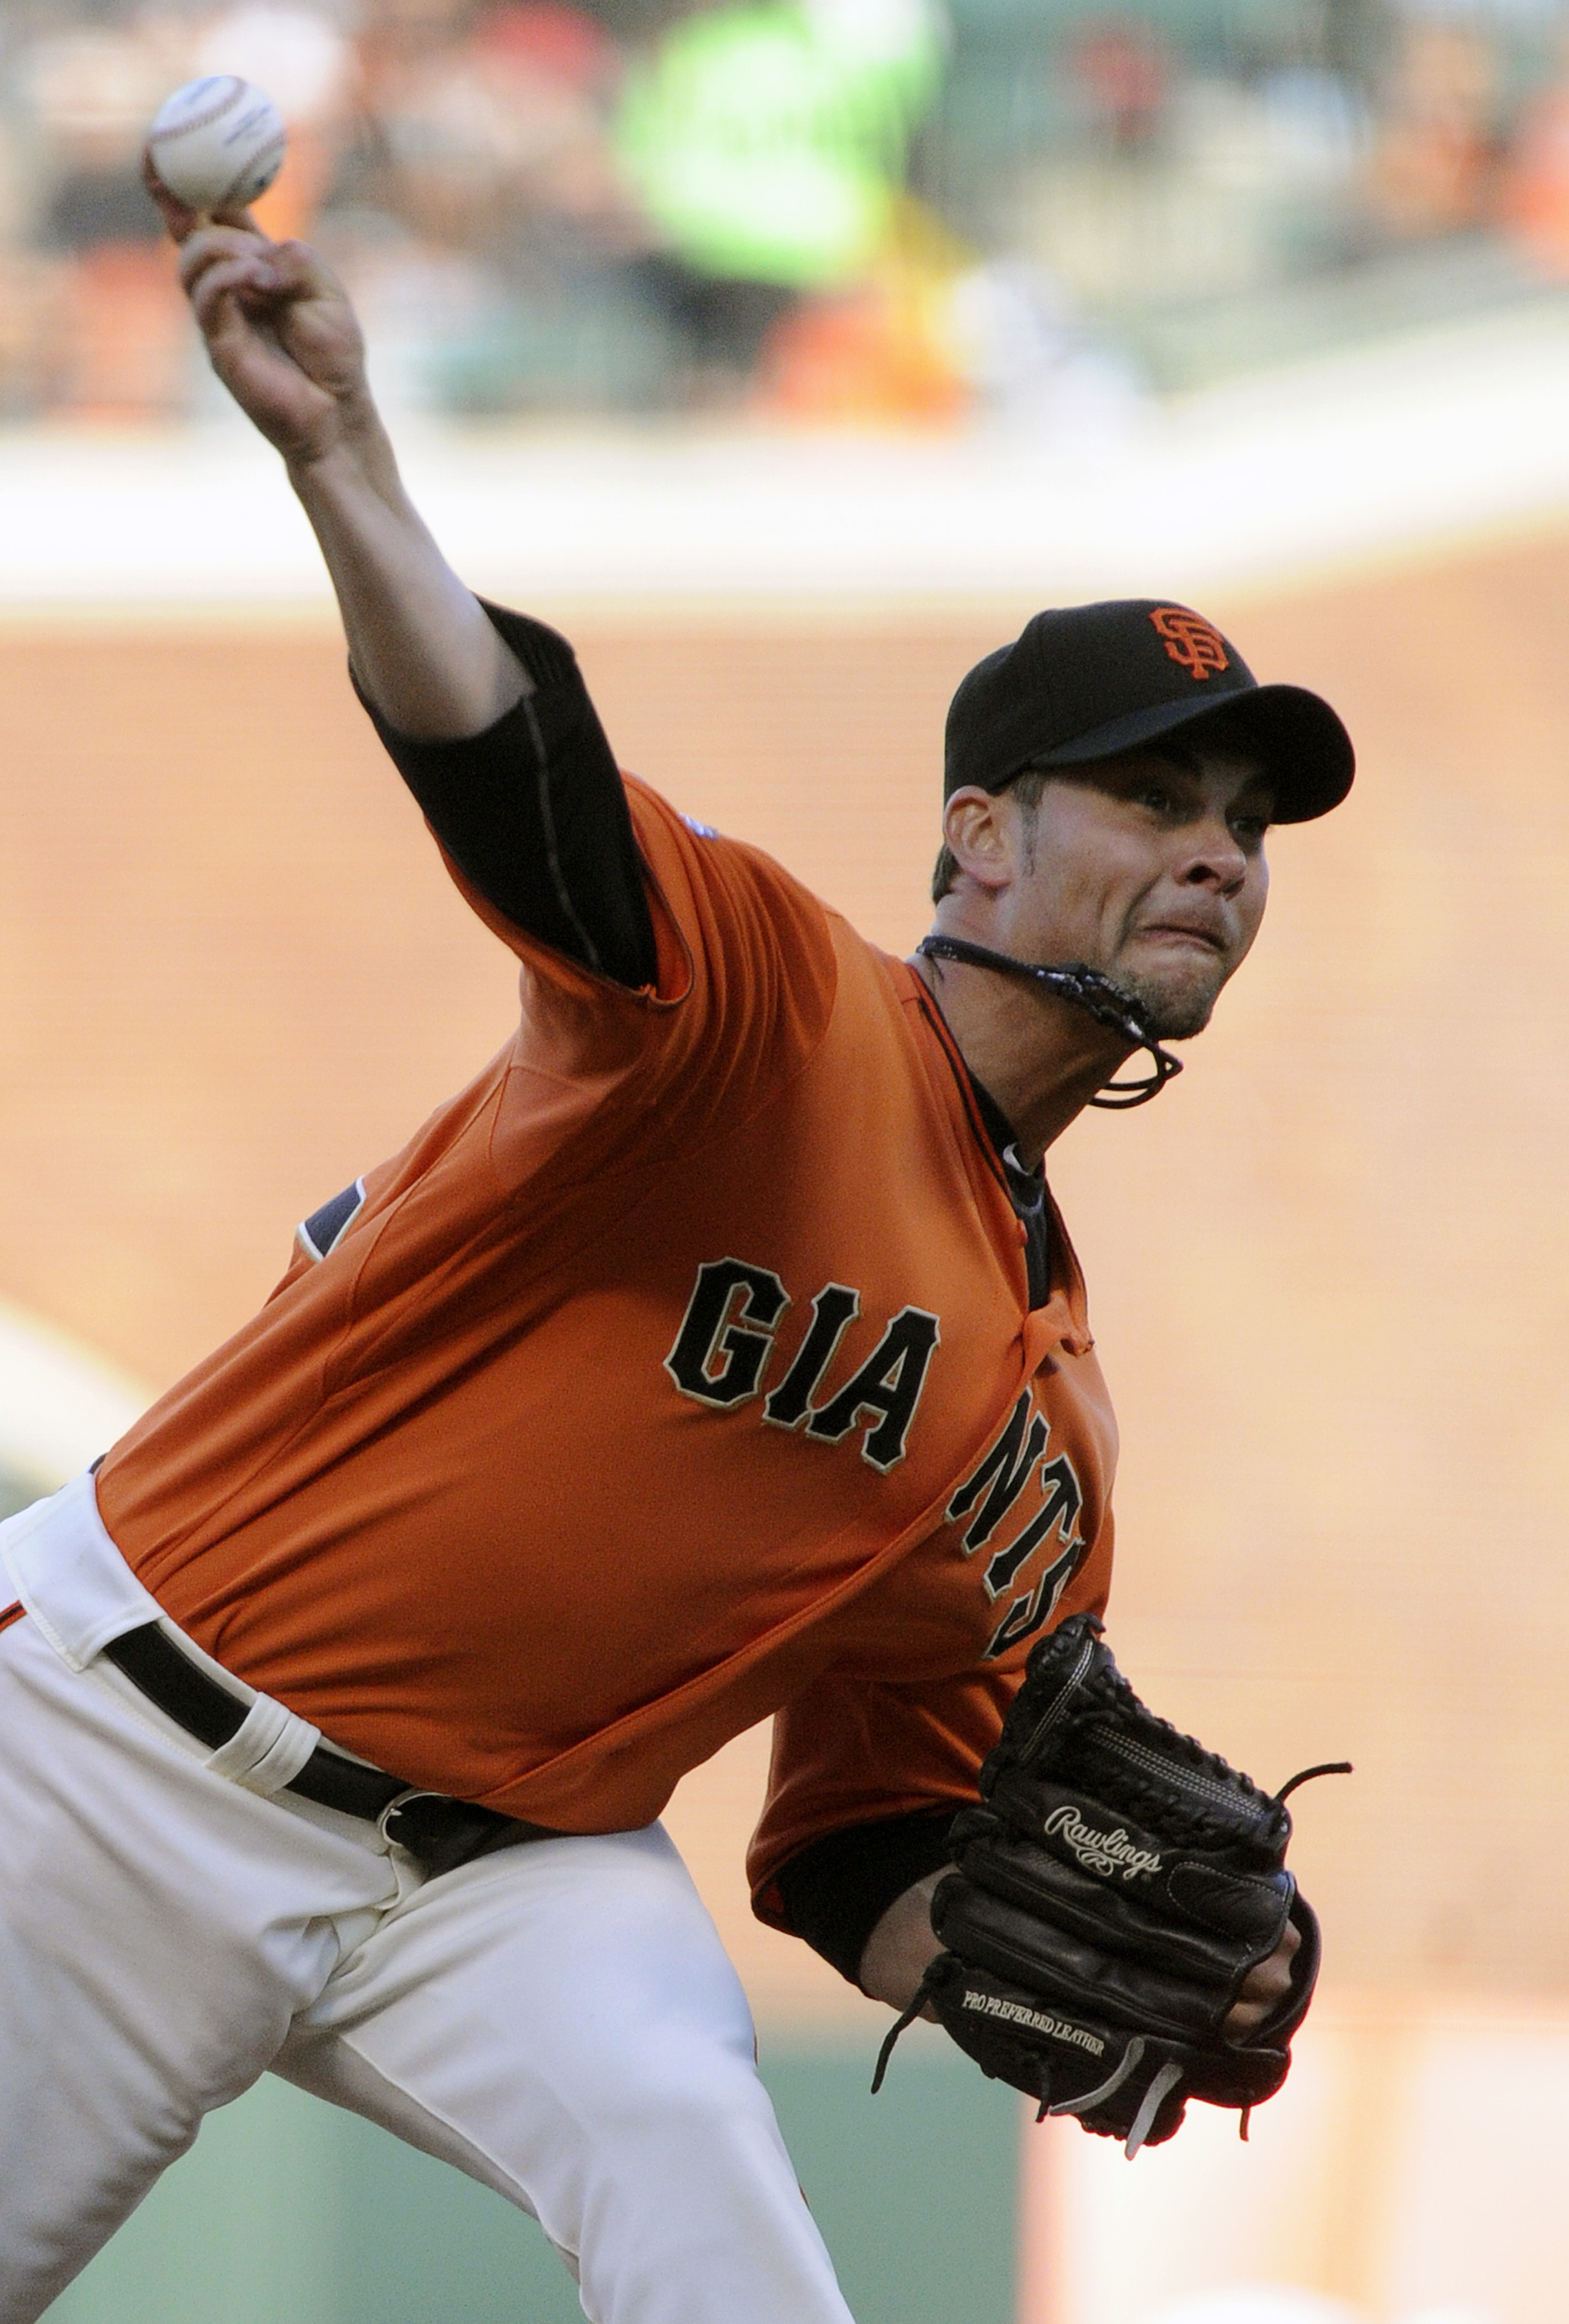 Vogelsong is 4-1 with an E.R.A. of 1.92 since taking over